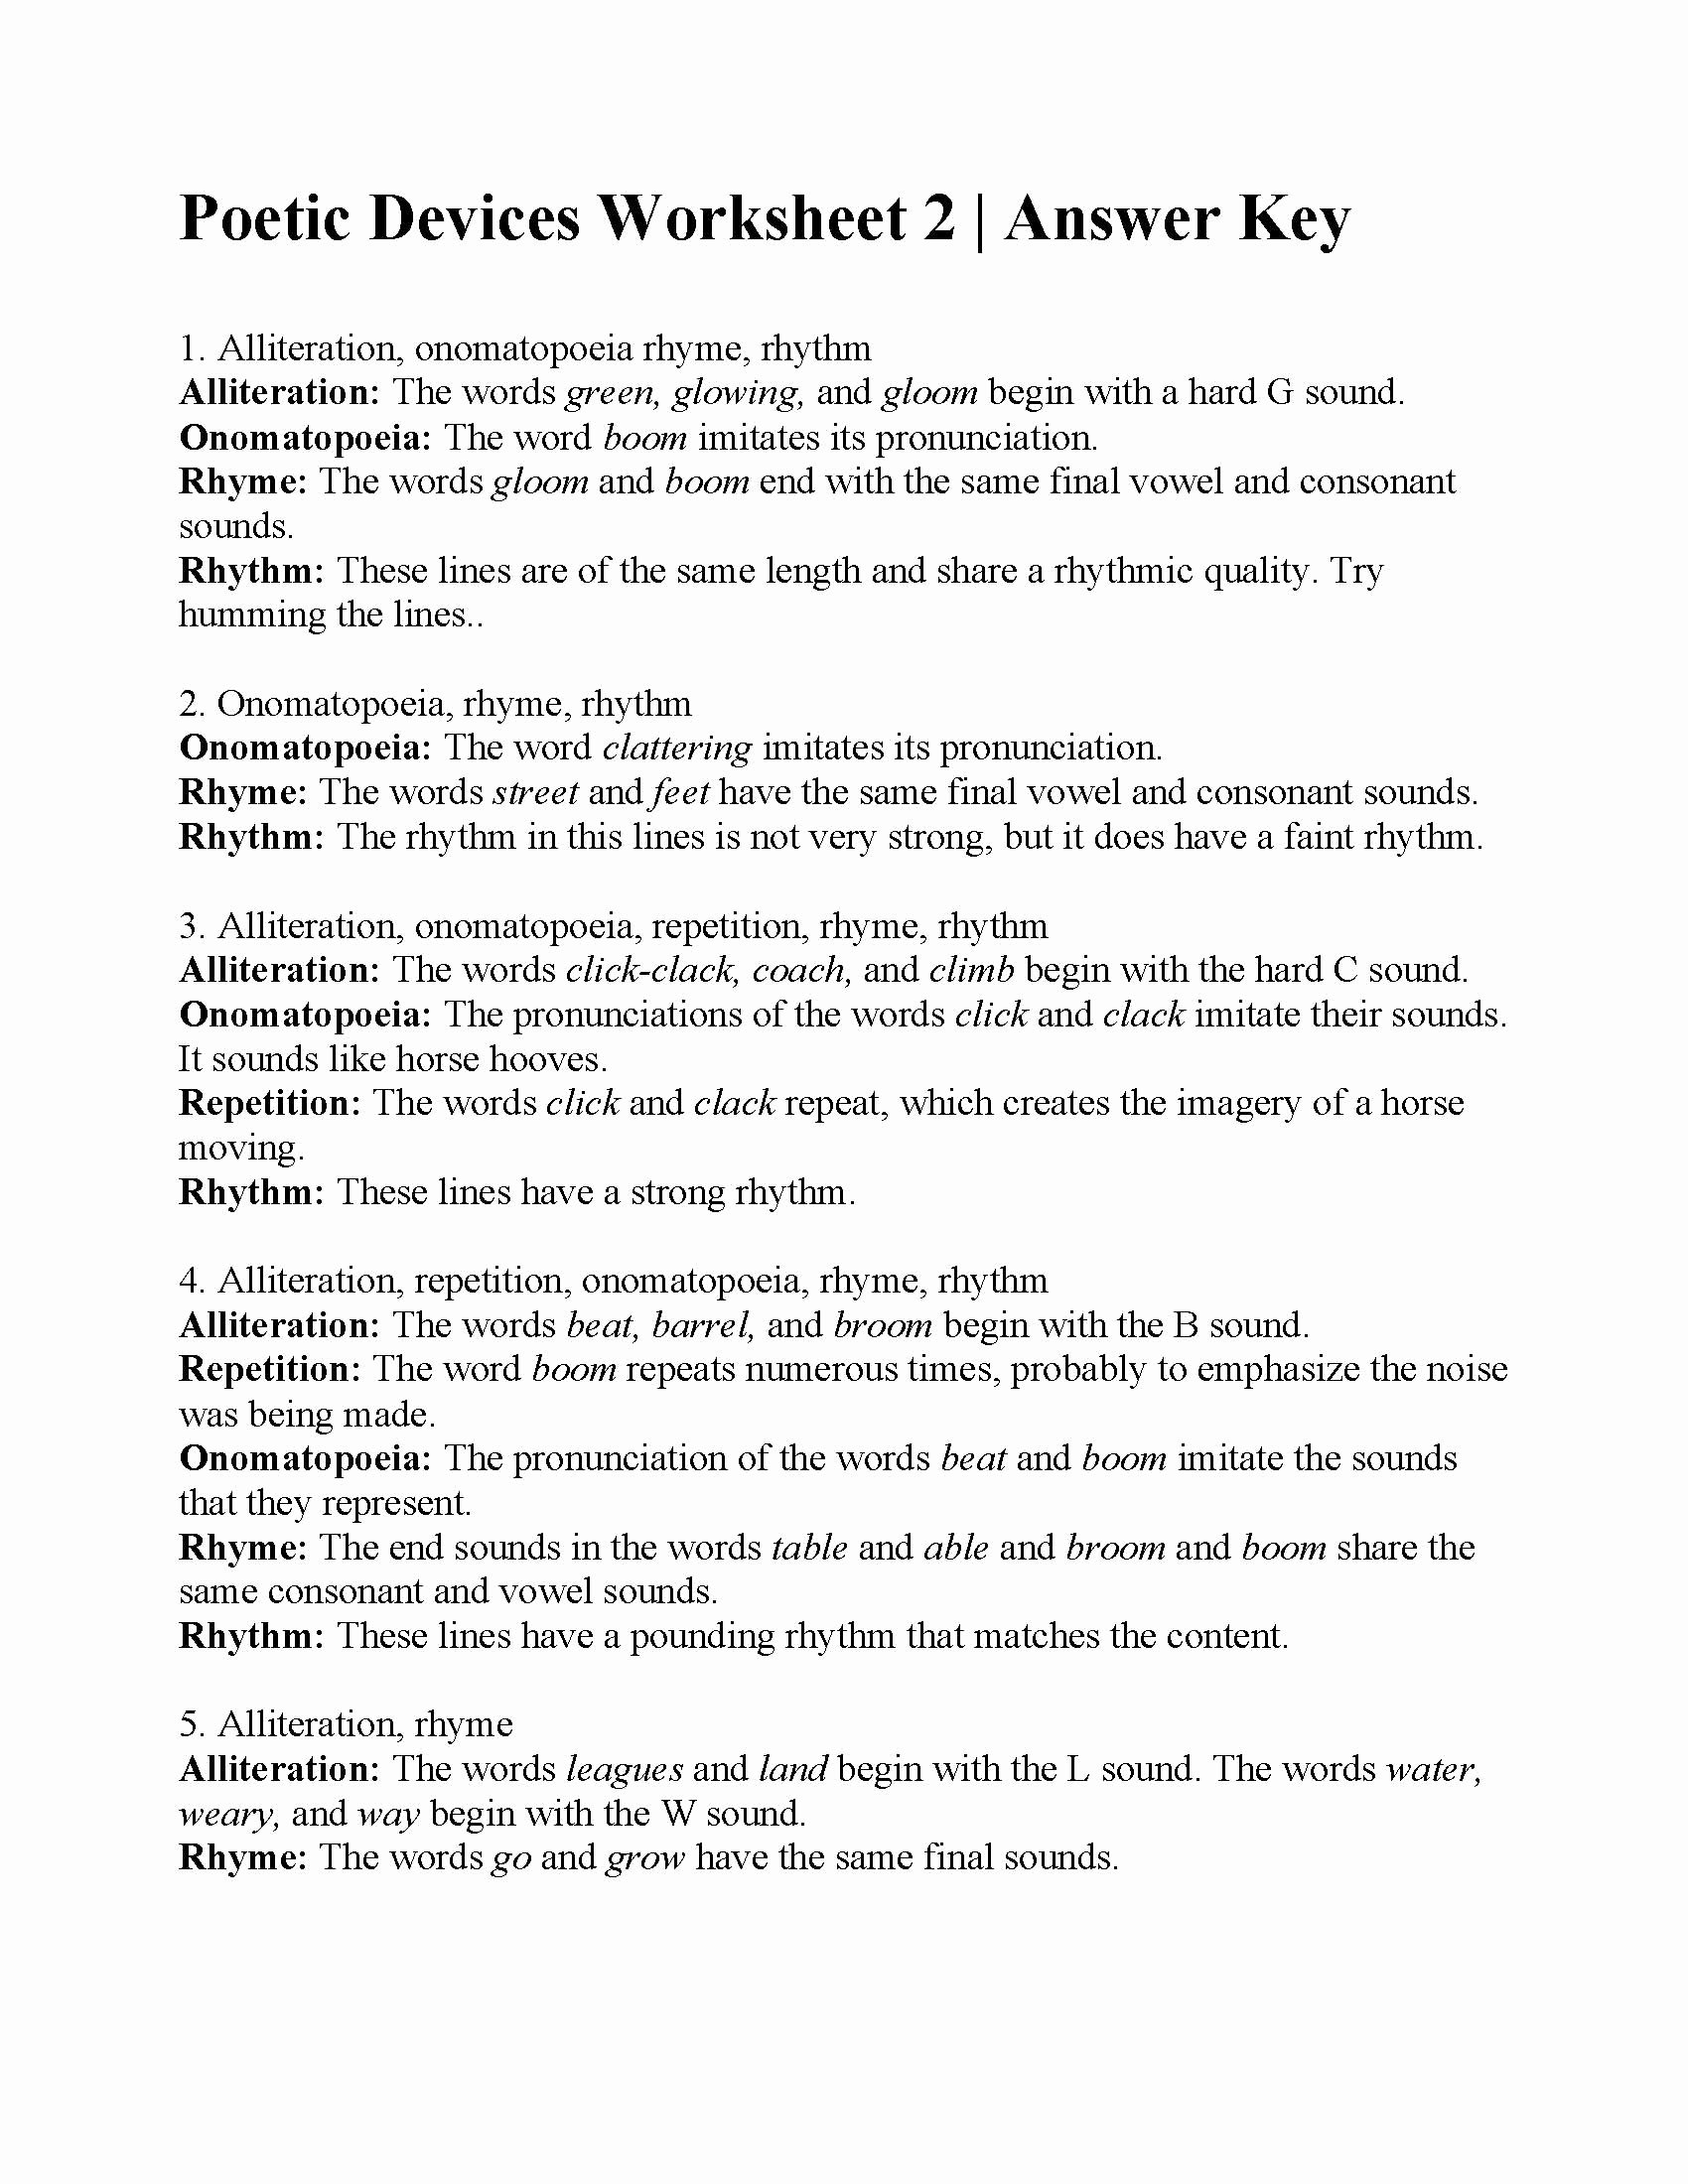 Figurative Language Worksheet 2 Answers Inspirational Poetic Devices Worksheet 2